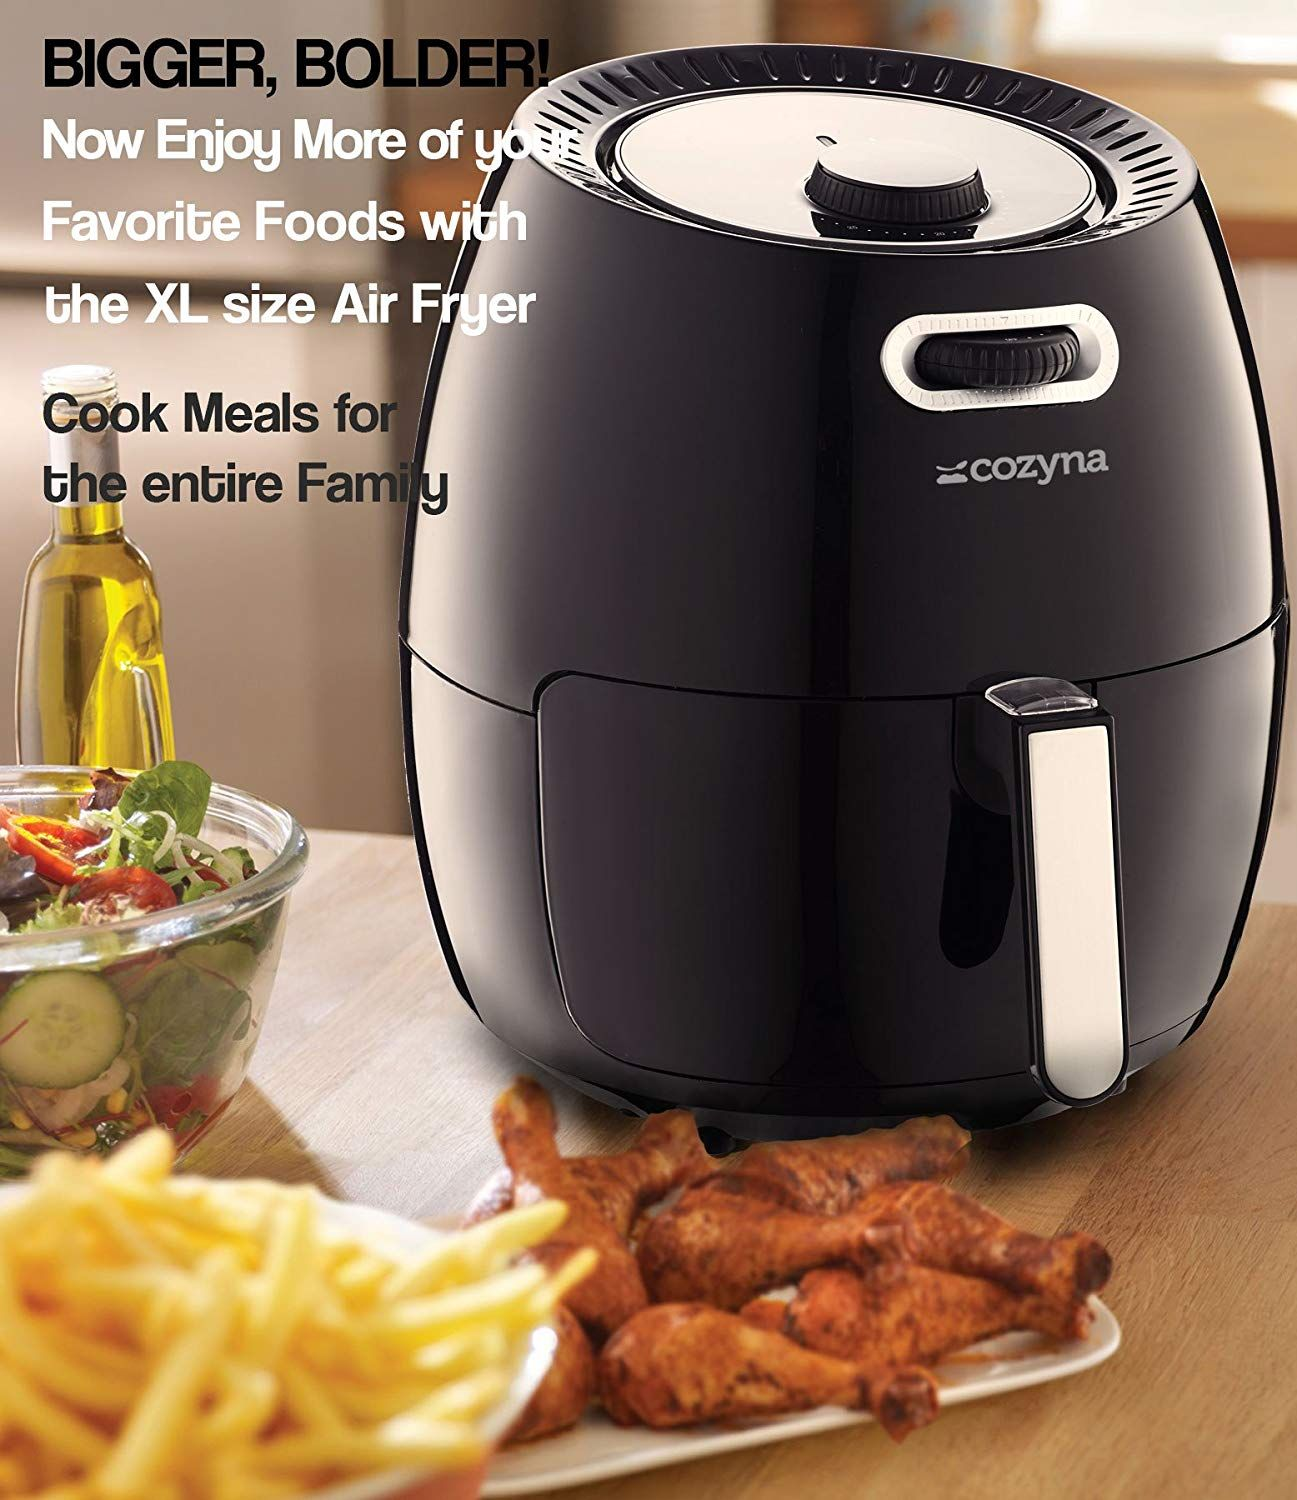 Air Fryer XL by Cozyna (5.8QT) with airfryer cookbook